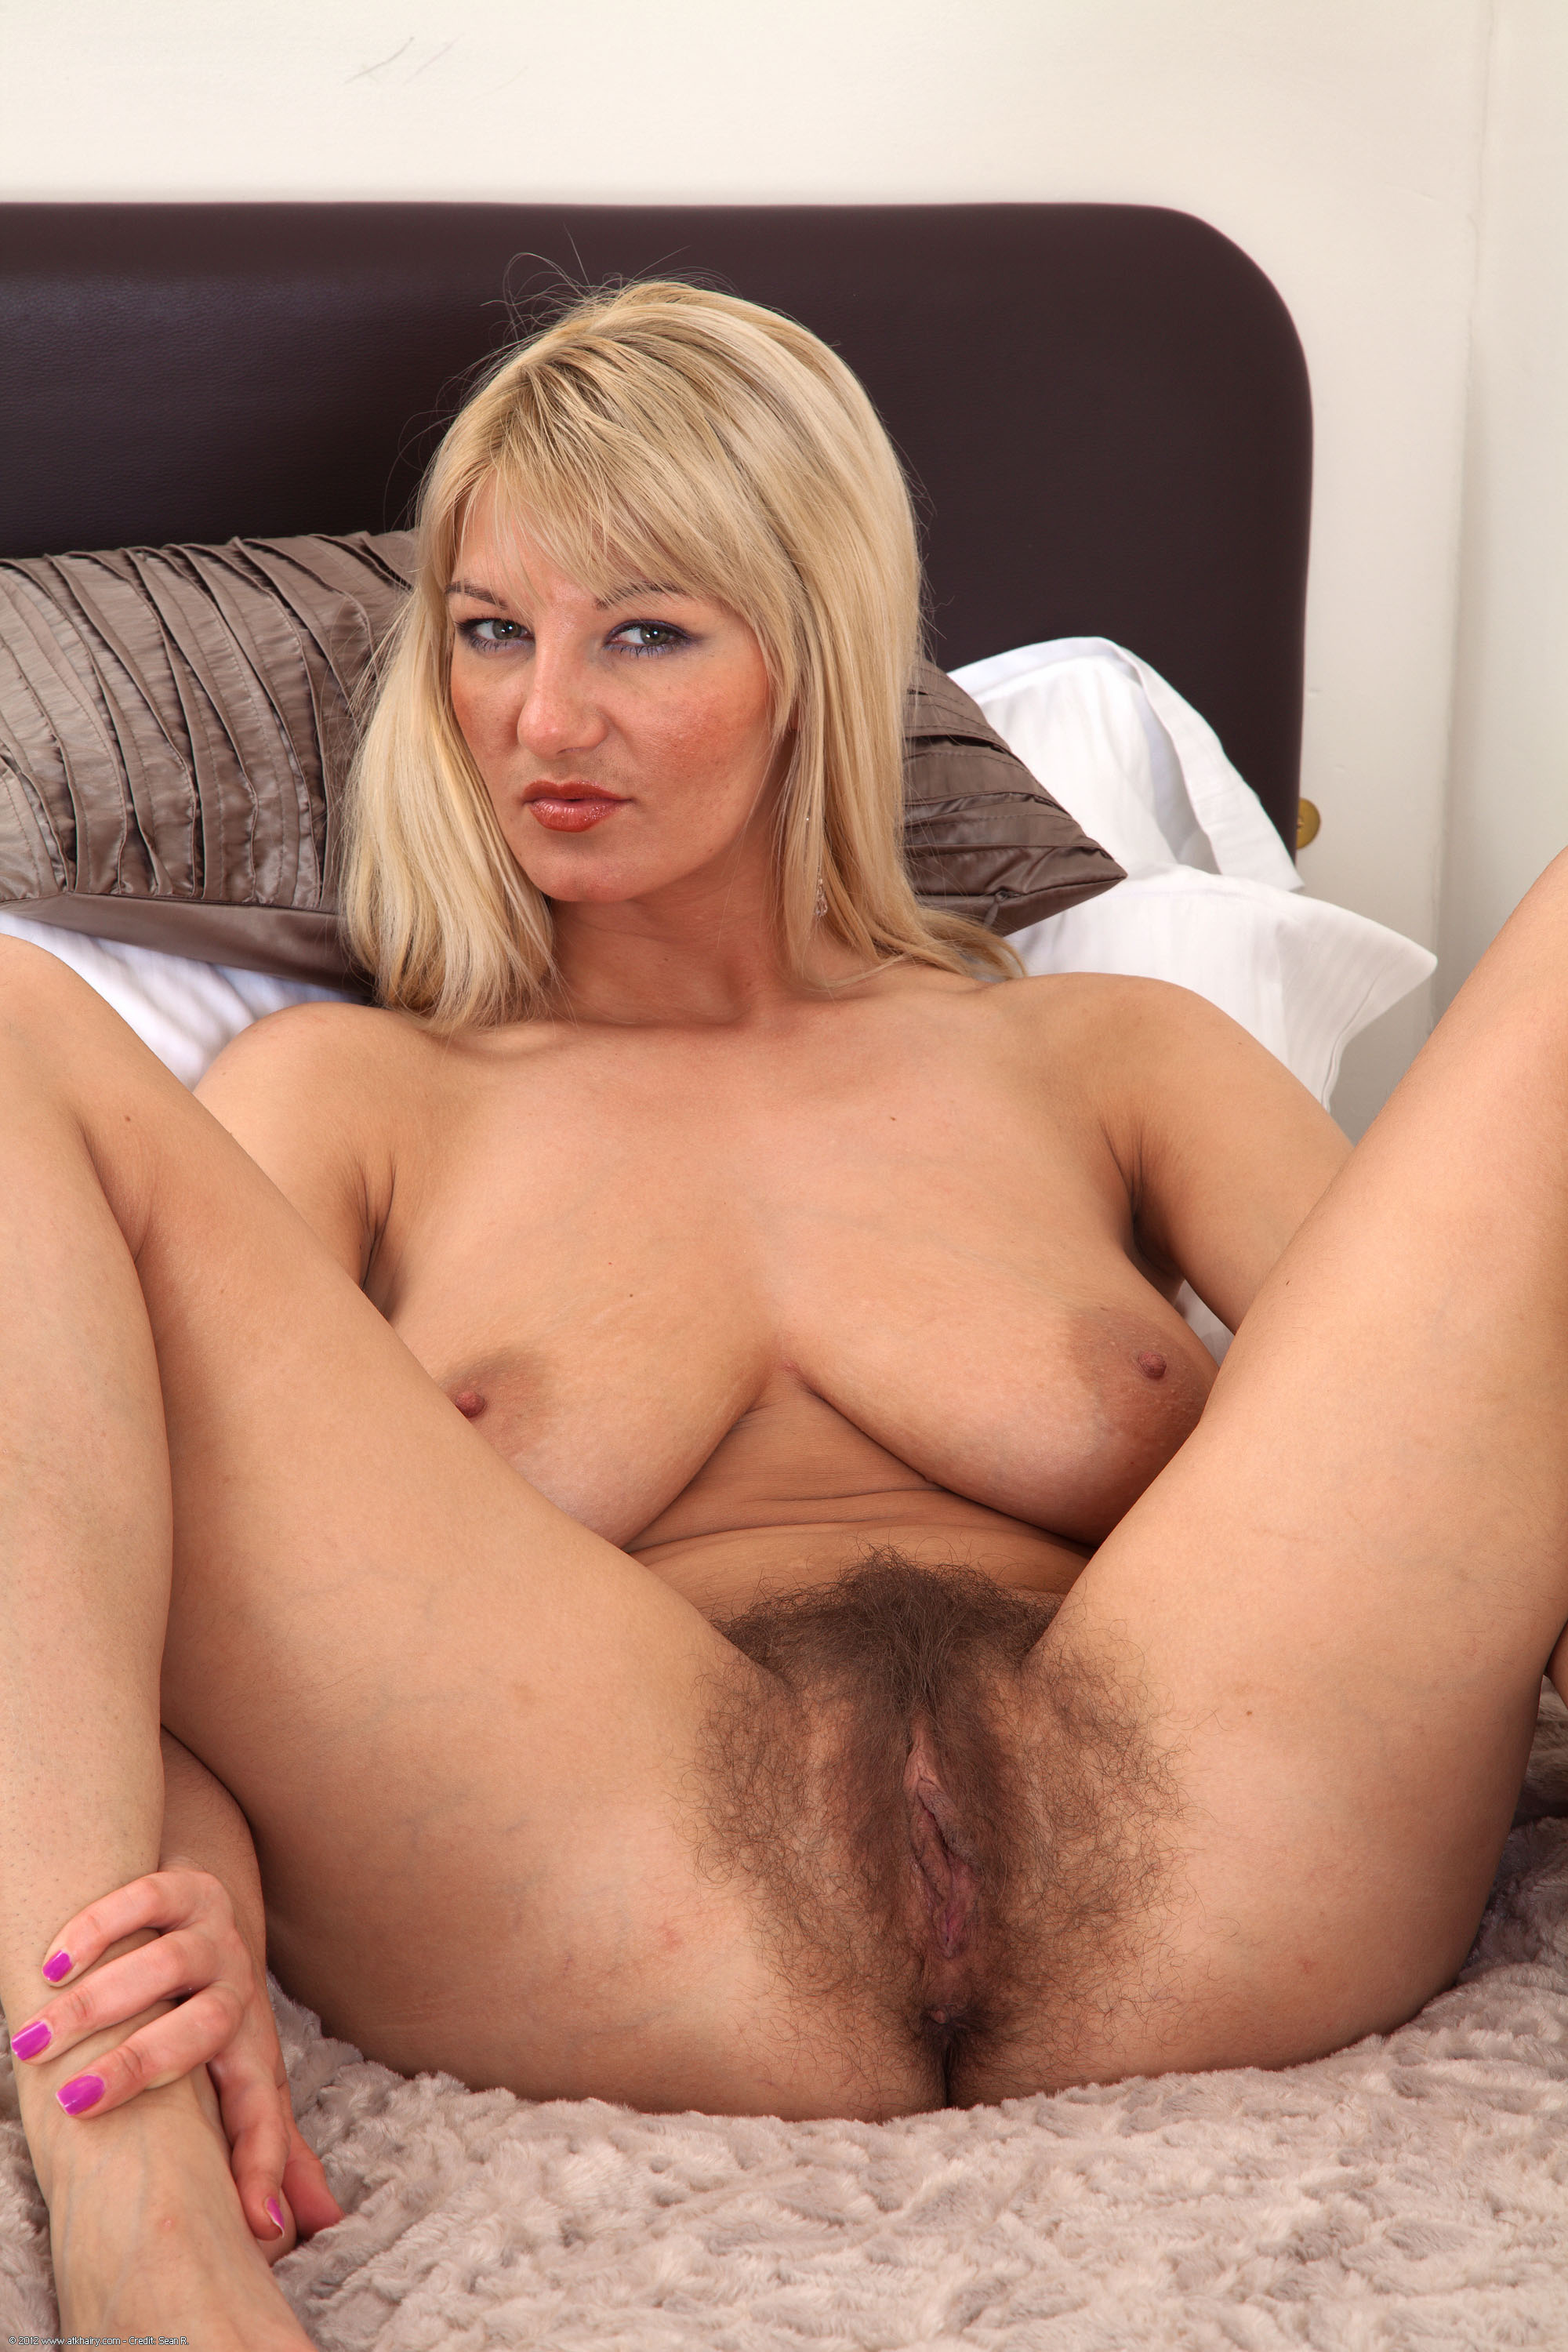 Hairy Videos - Large Porn Tube Free Hairy porn videos